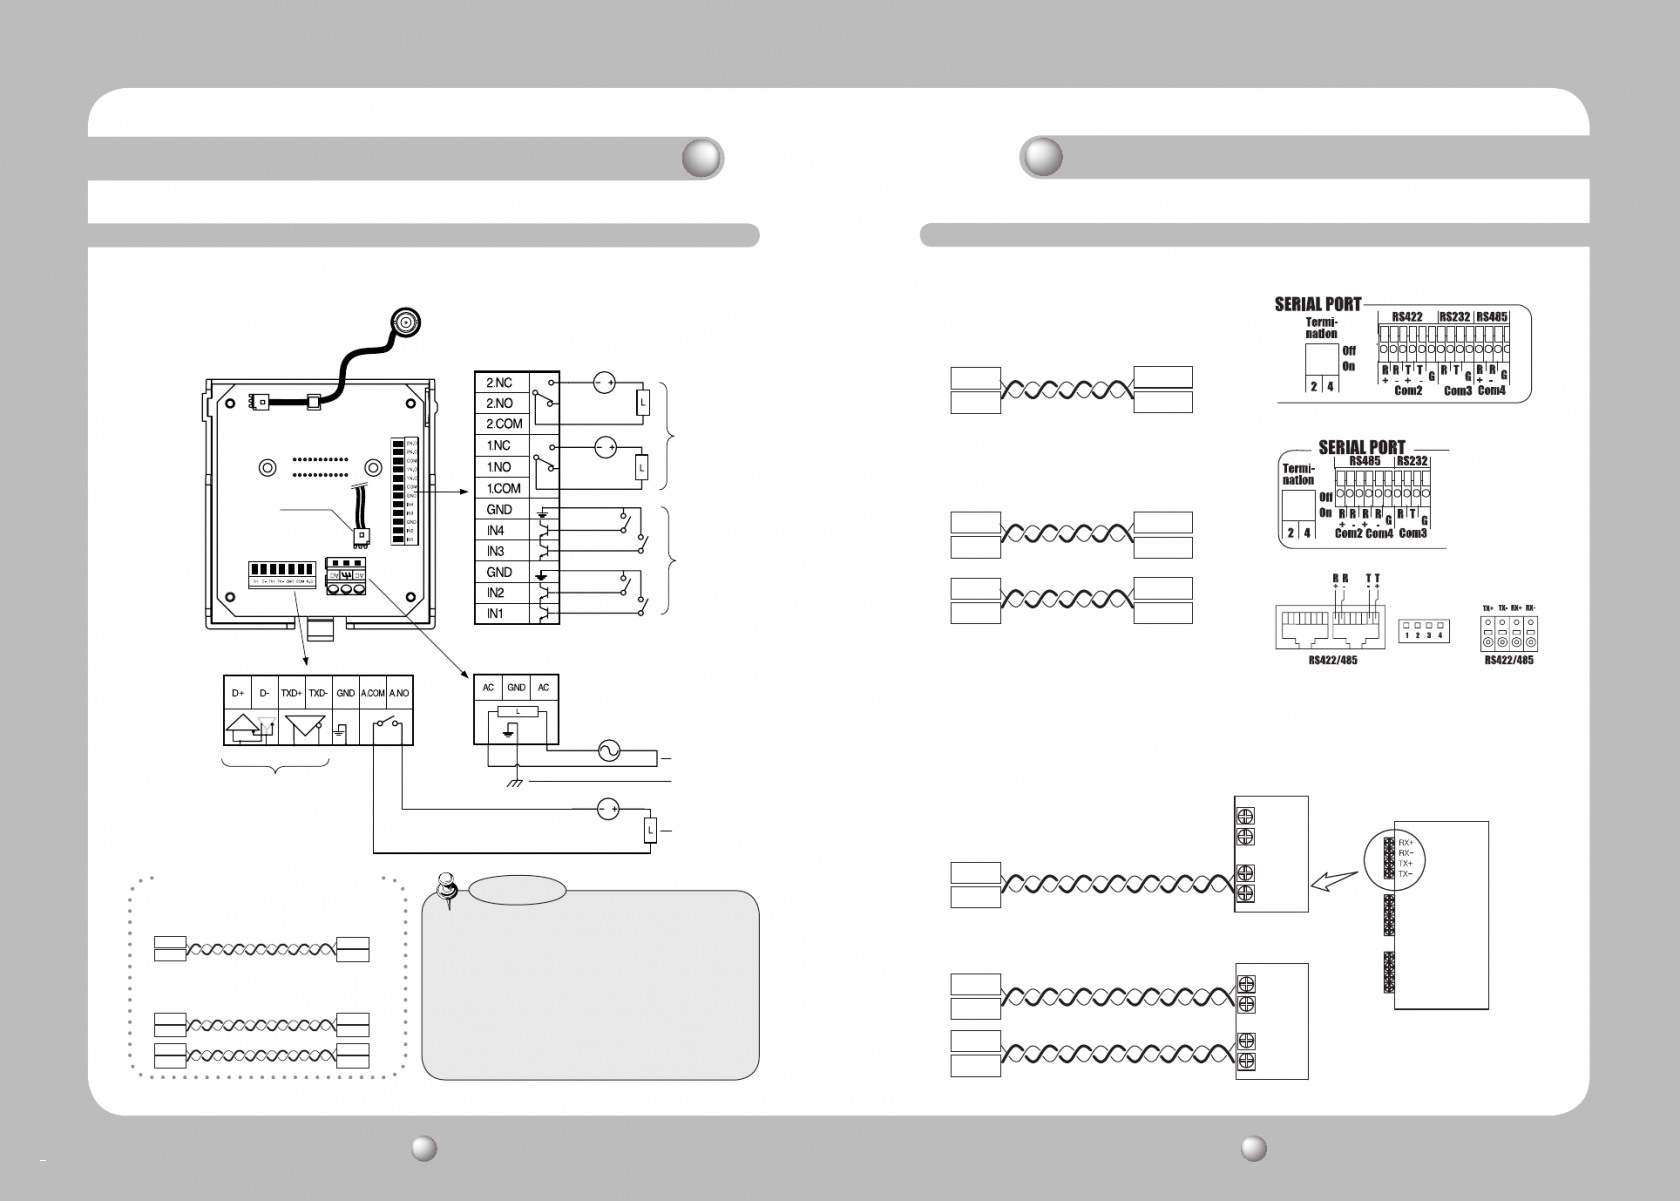 samsung security camera wiring diagram for 4 way switch with dimmer diagrams library